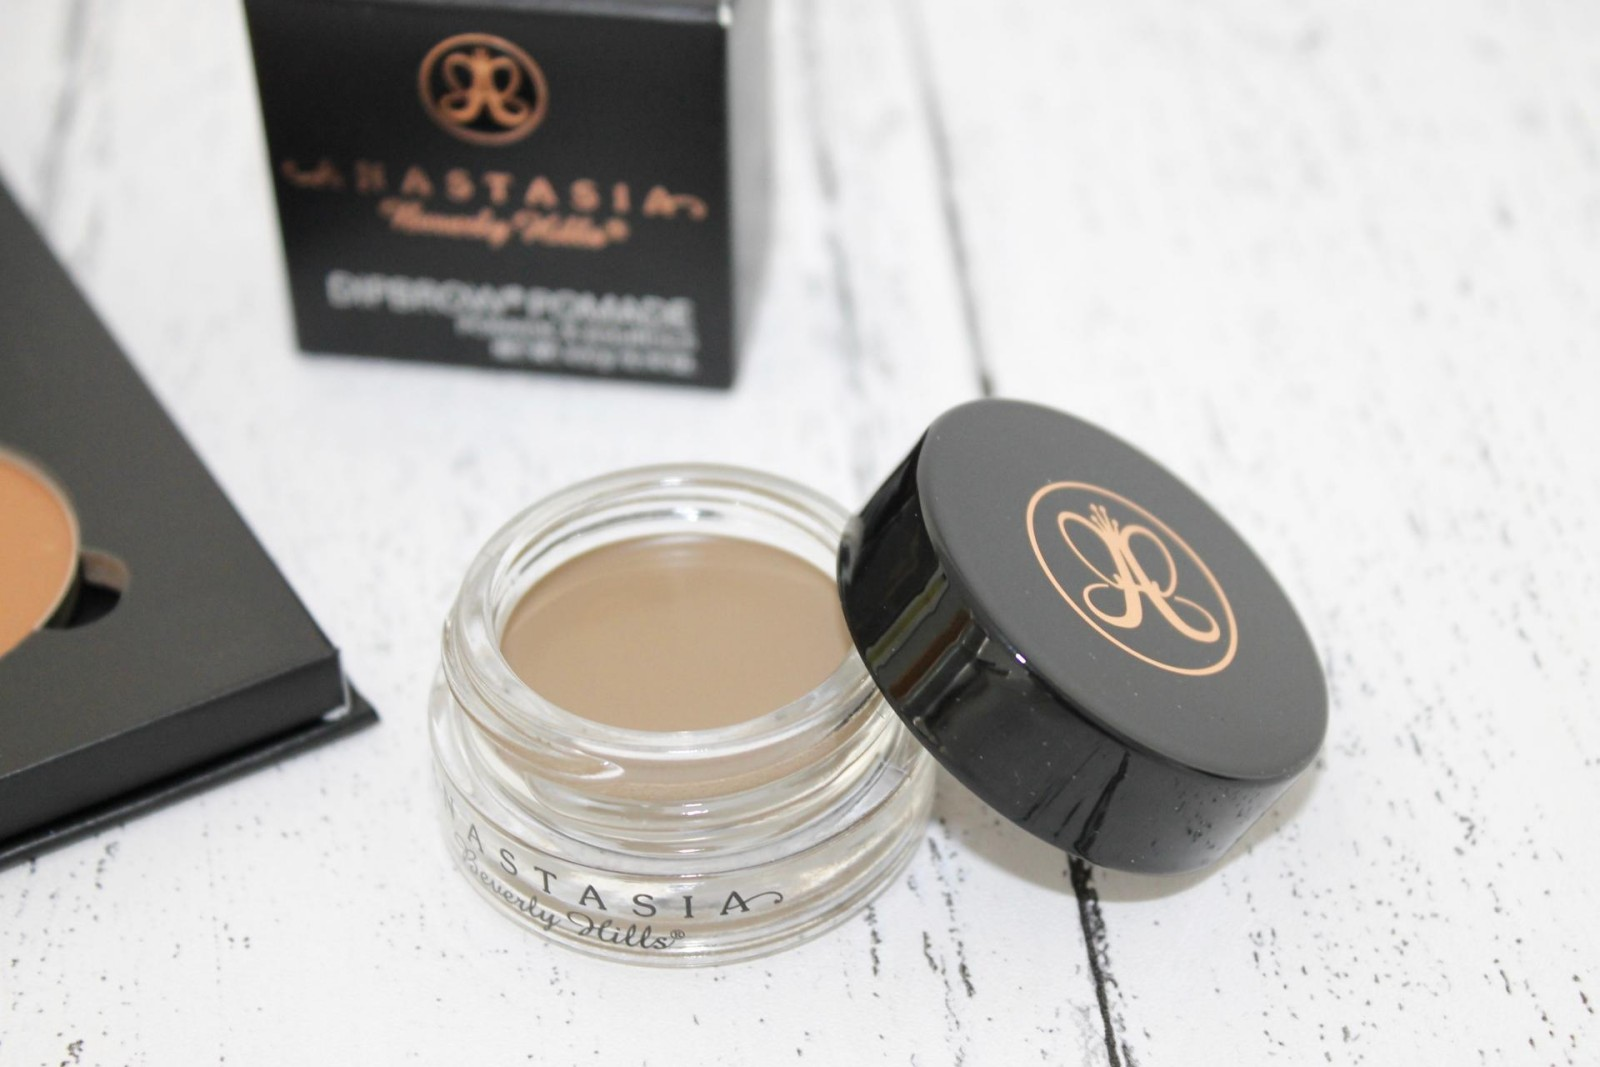 Anastasia Beverly Hills Review 5